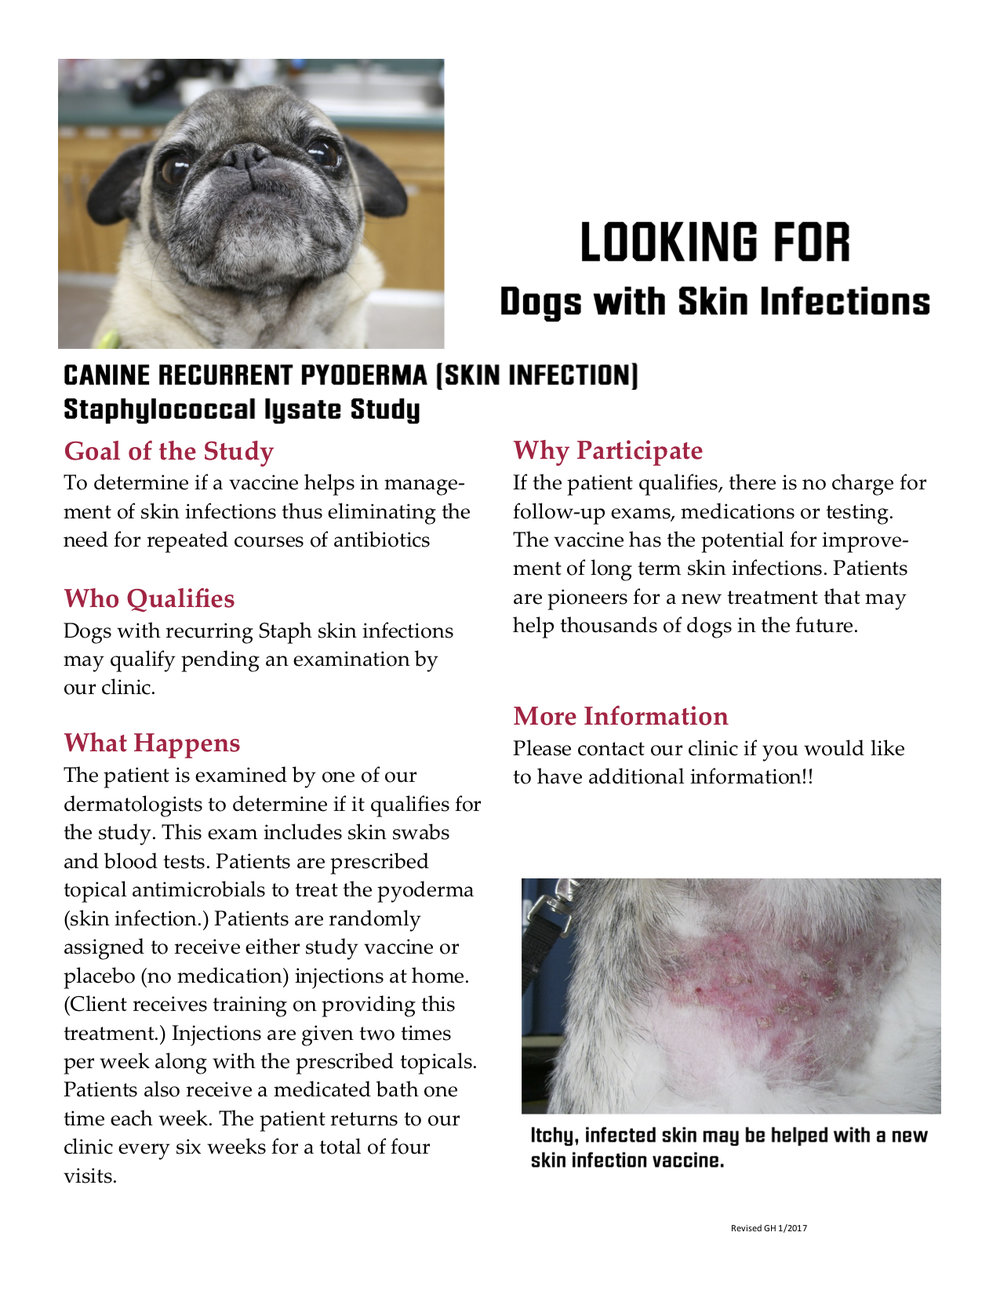 Staphylococcal Lysate study flyer image.jpg